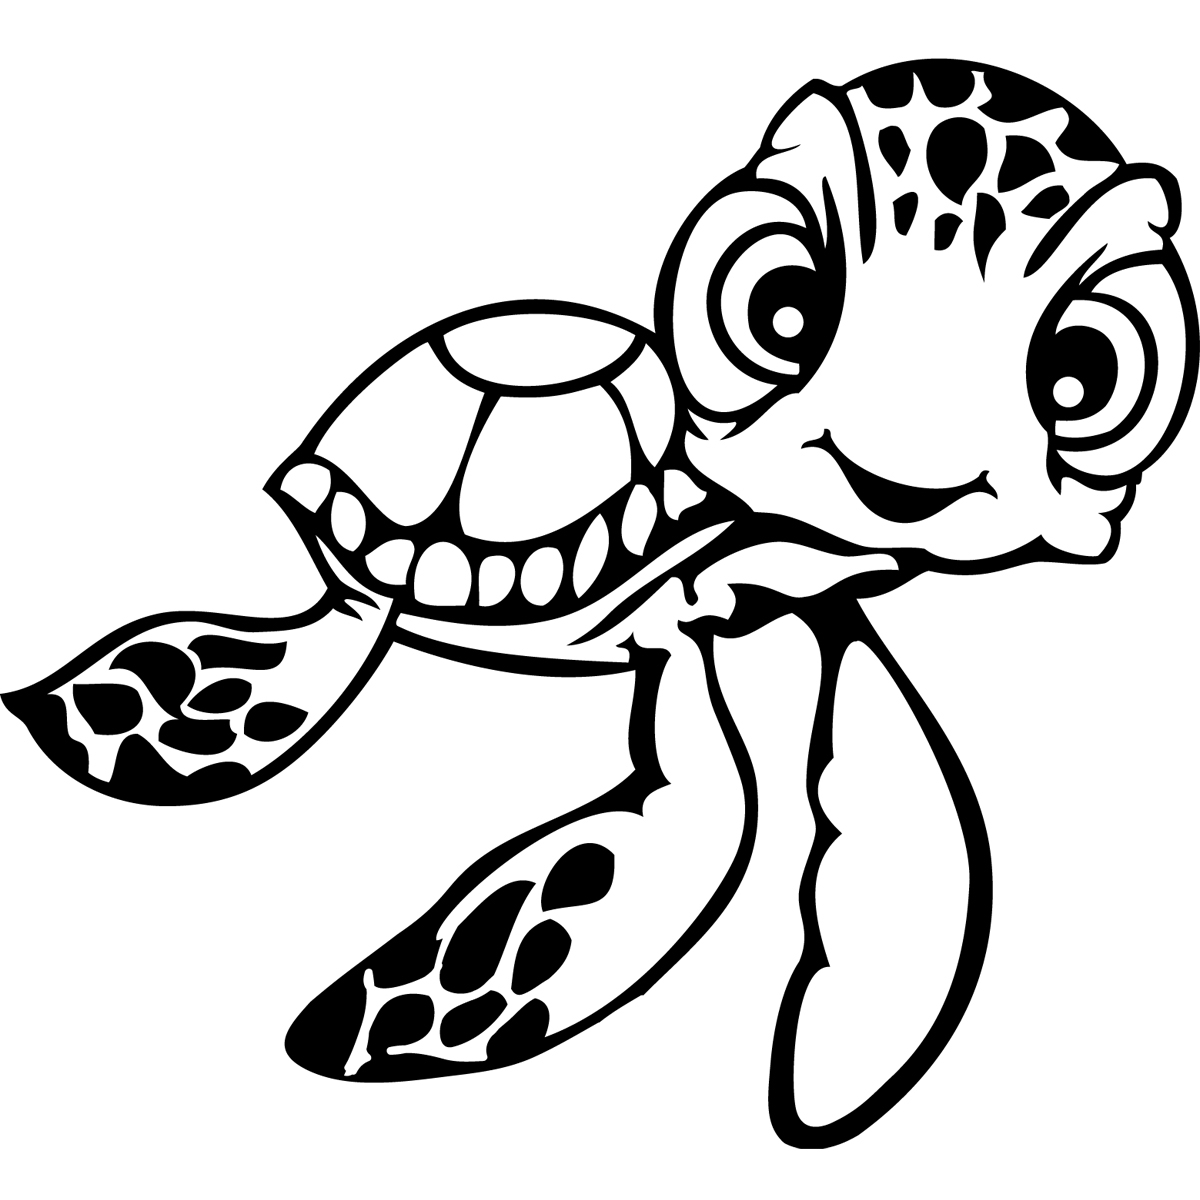 turtle pictures for coloring coloring pages turtles free printable coloring pages pictures coloring for turtle